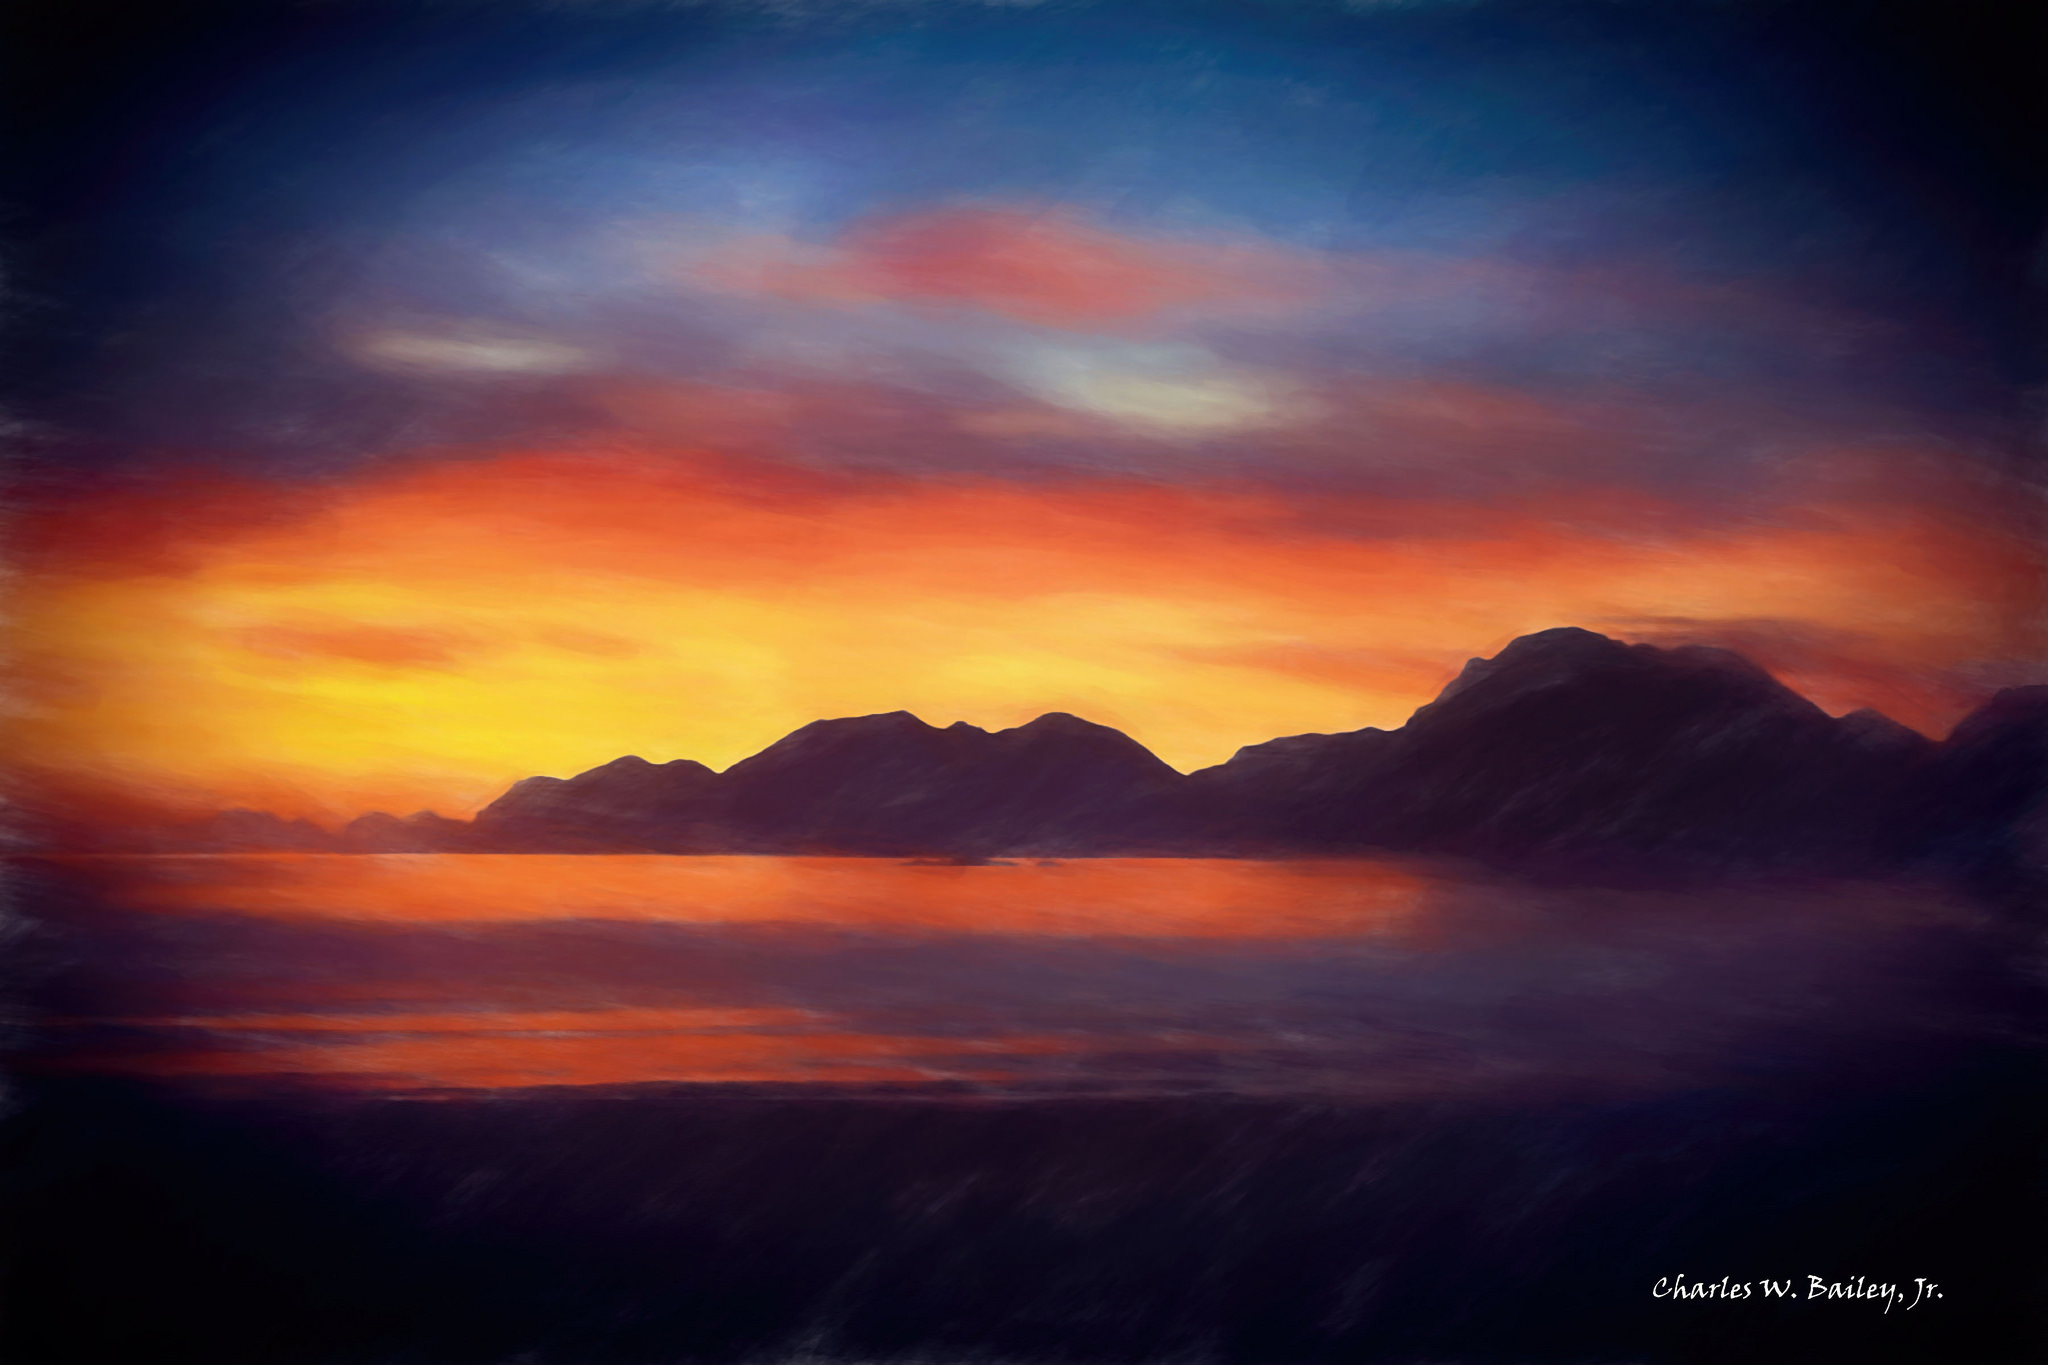 2048x1365 Digital Pastel Drawing Of A Sunset